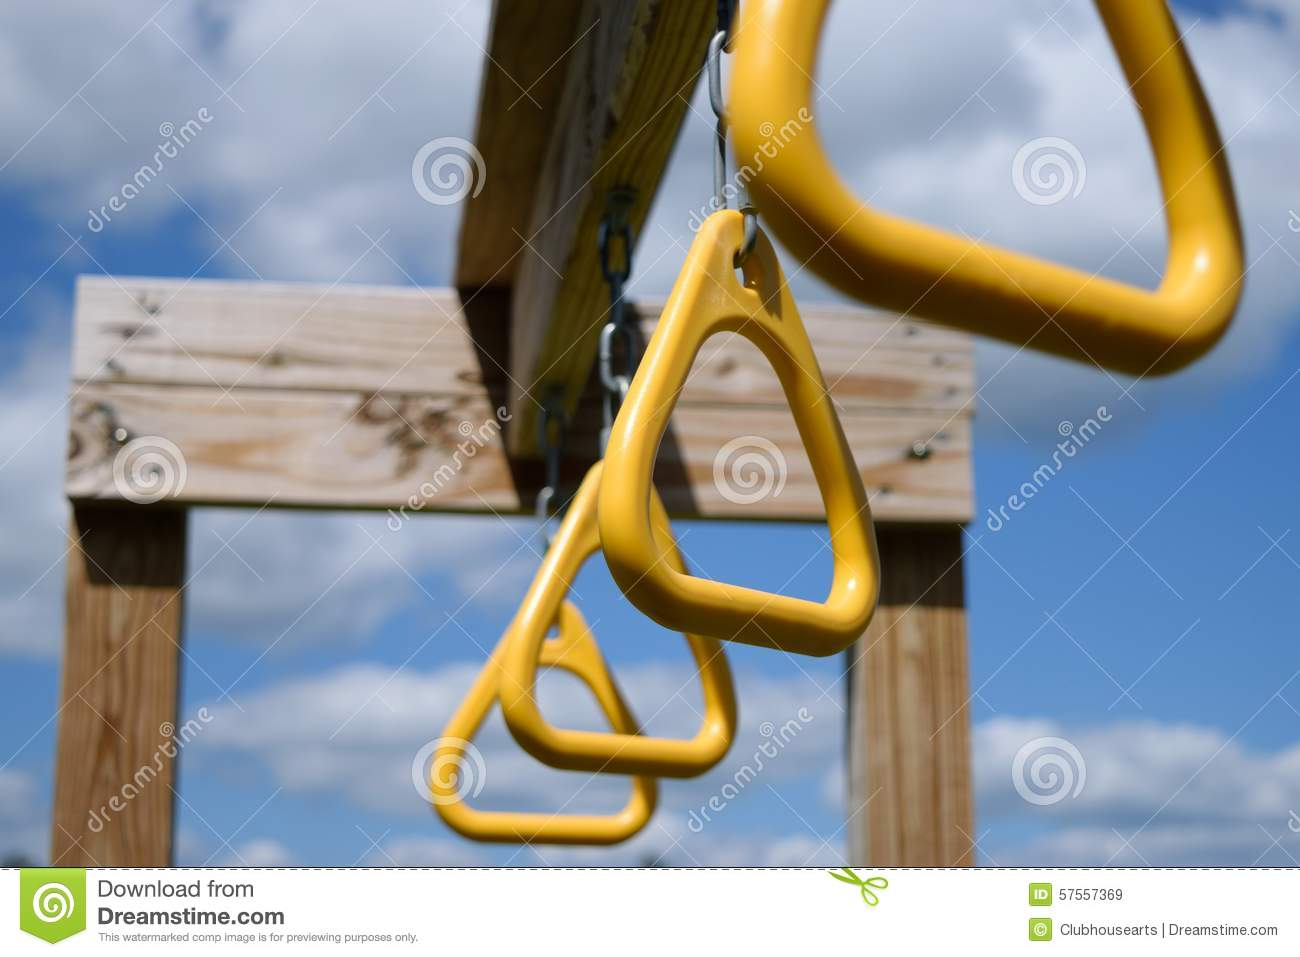 View From Below Of Monkey Bar Rings Hanging From Wooden